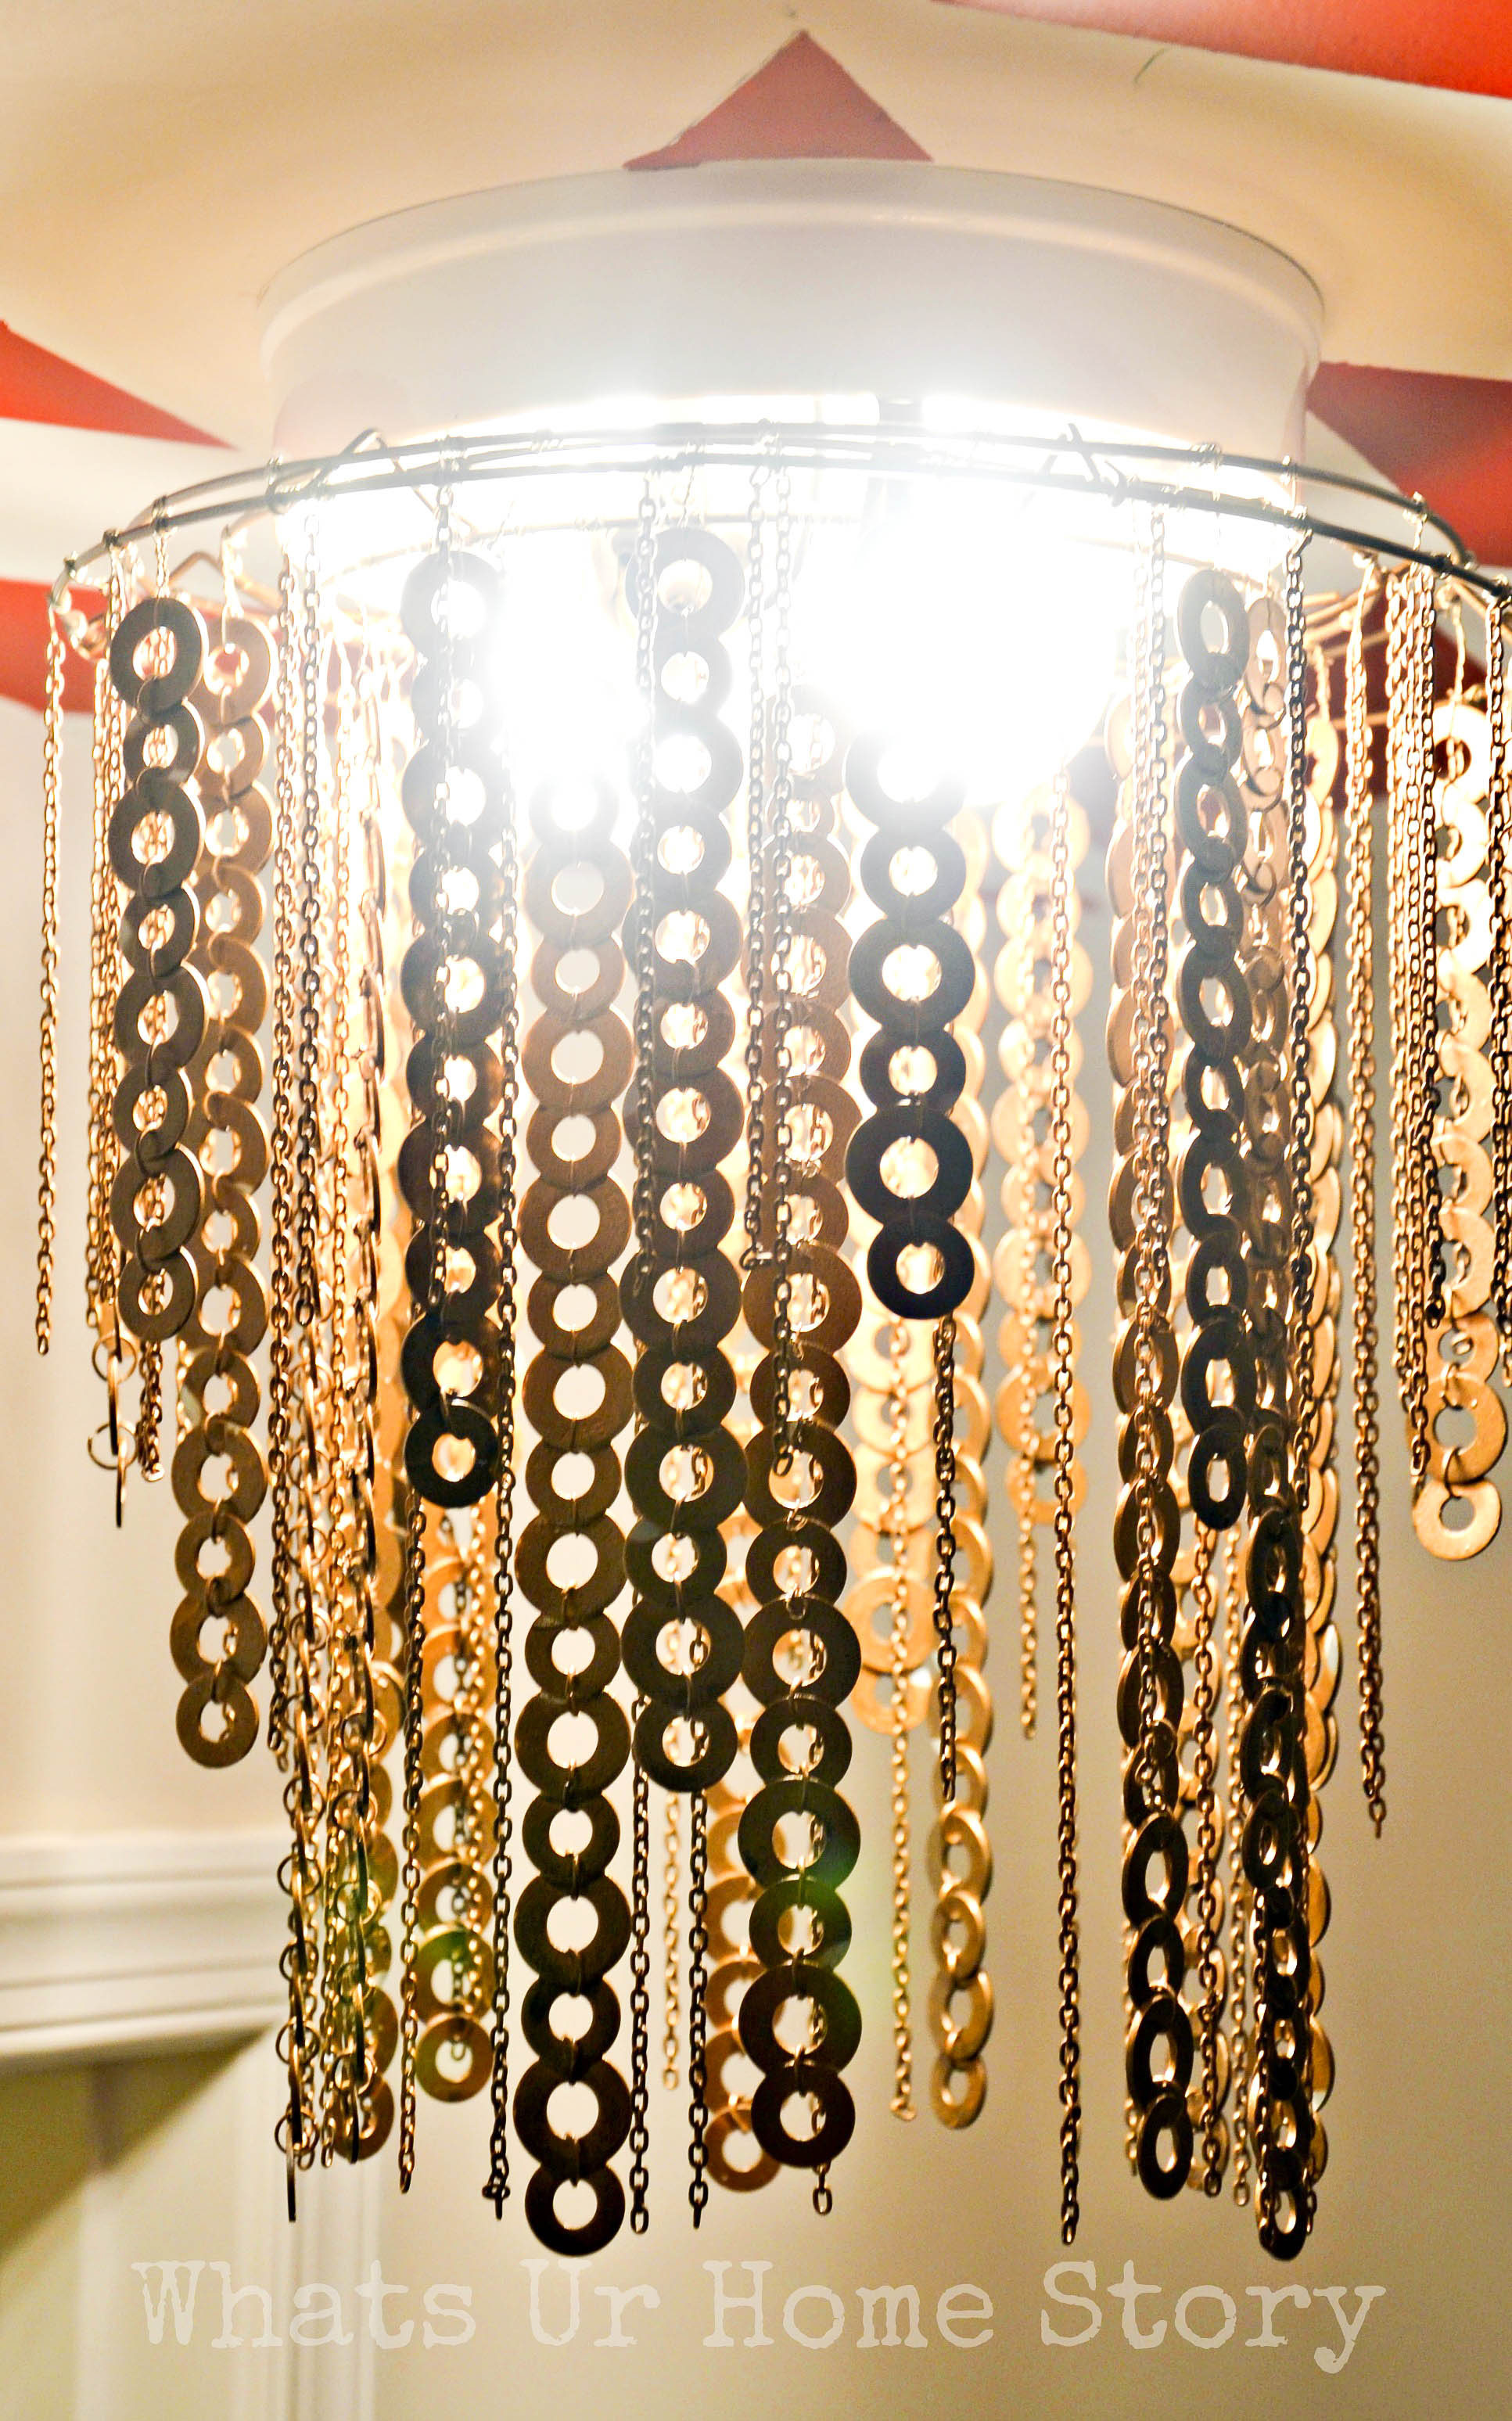 Diy flat washer chandelier whats ur home story diy flat washer chandelier arubaitofo Images